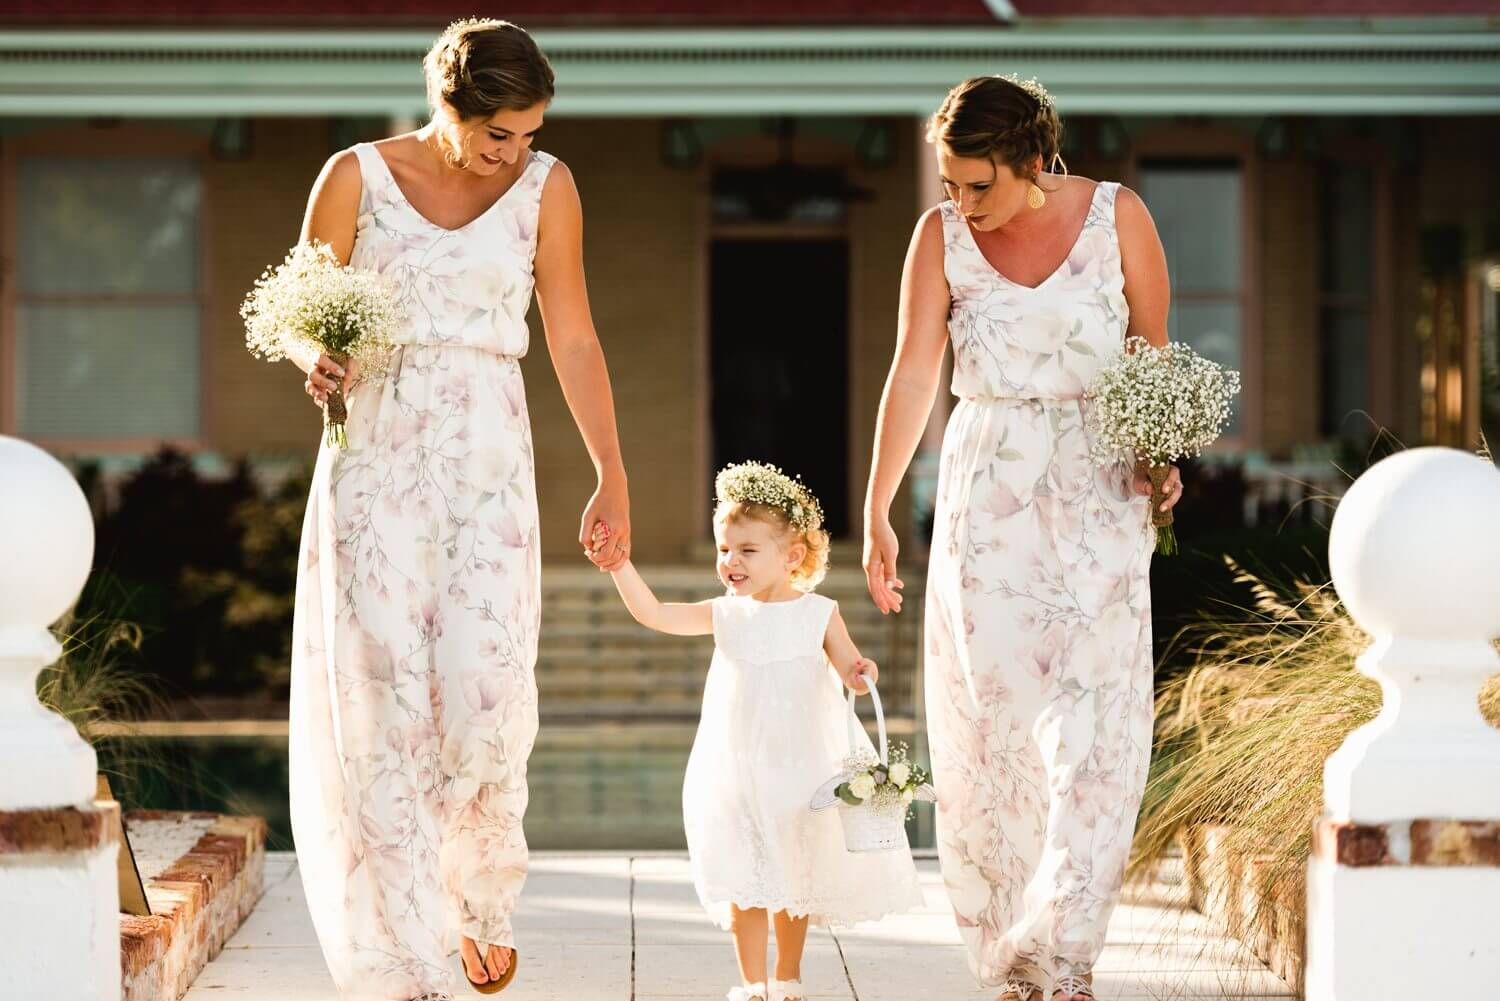 Freas Photography Southernmost House Wedding 90 - Boho Styled Key West Wedding at the Southernmost House in Key West, Florida